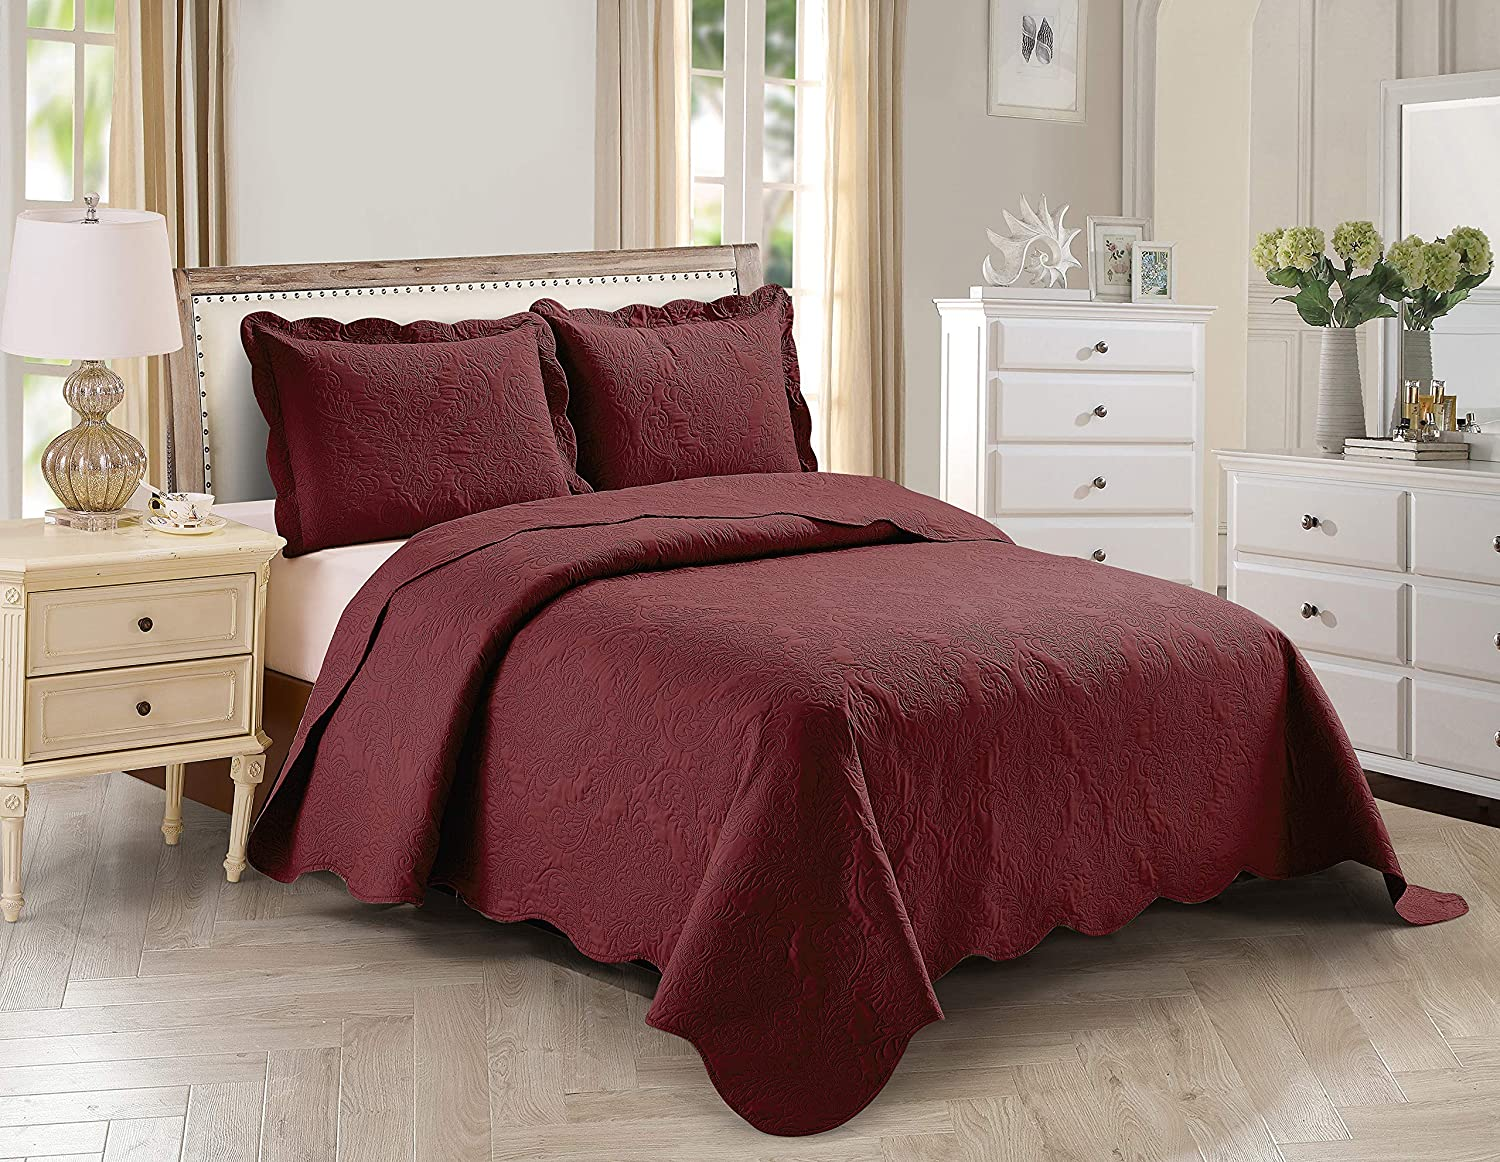 Home Collection 3pc Full/Queen Over Size Elegant Embossed Bedspread Set Light Weight Solid Burgundy New